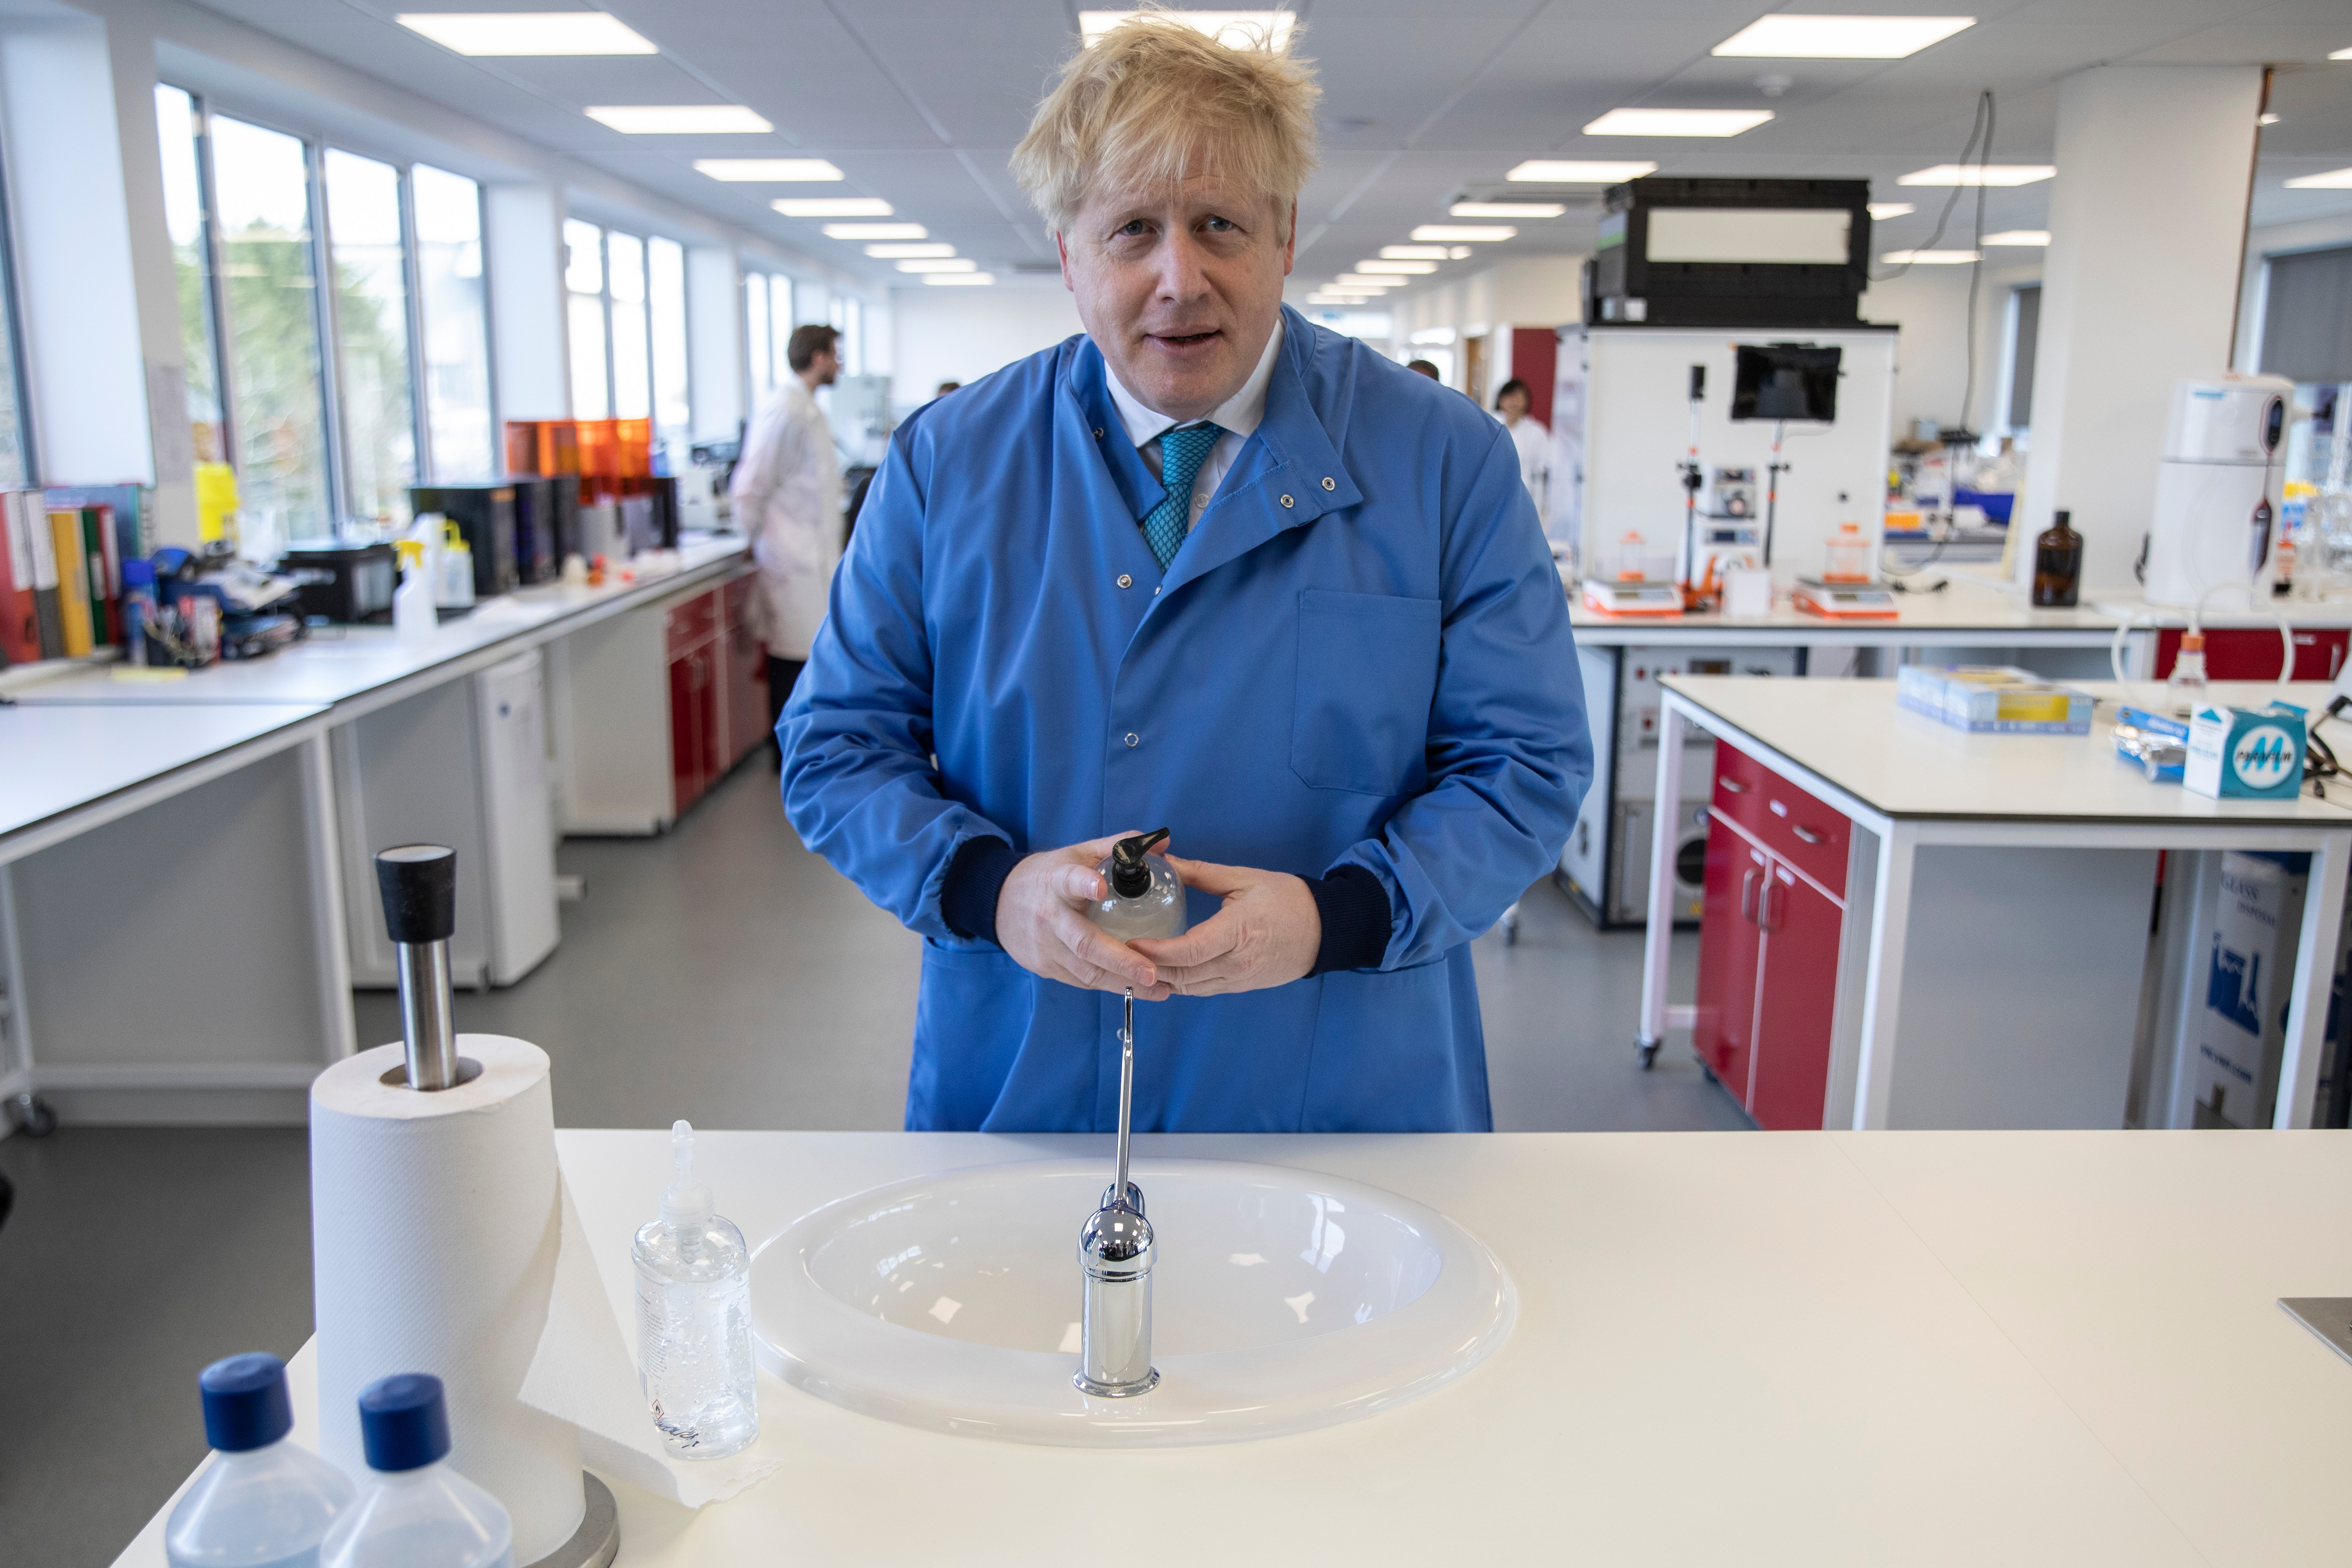 Boris Johnson knows the risk he is taking with his coronavirus strategy